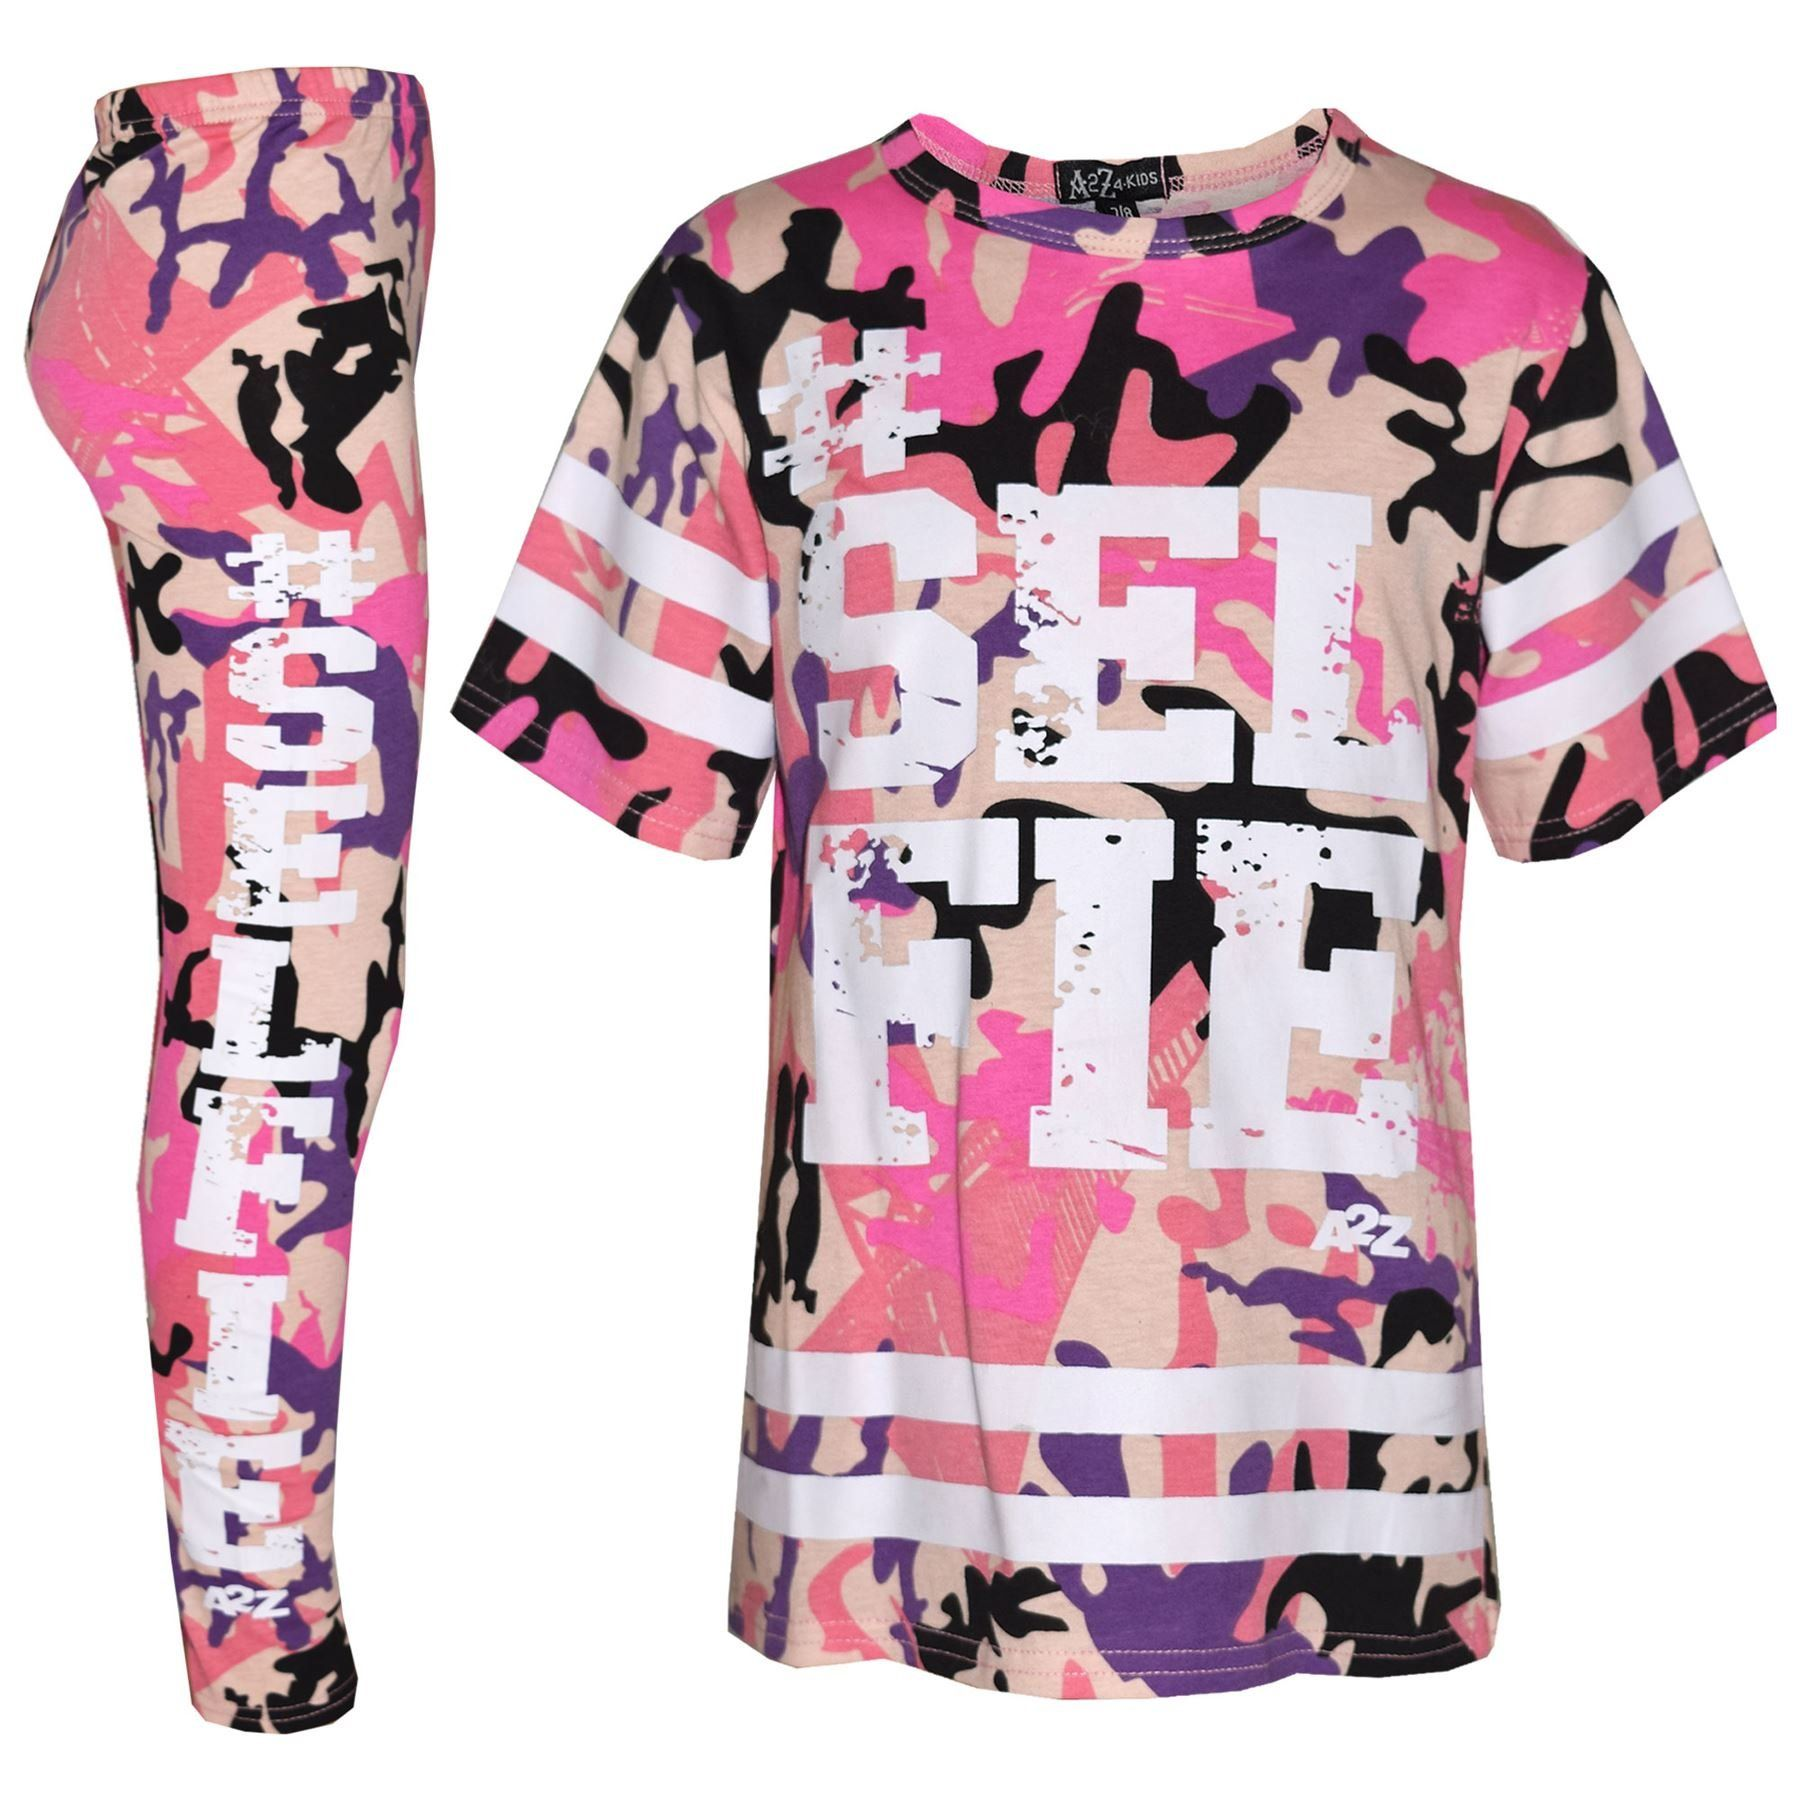 Girls Style Camo Top Leggings Outfit Tracksuit Pink Black Age 7 8 9 10 11 12 13